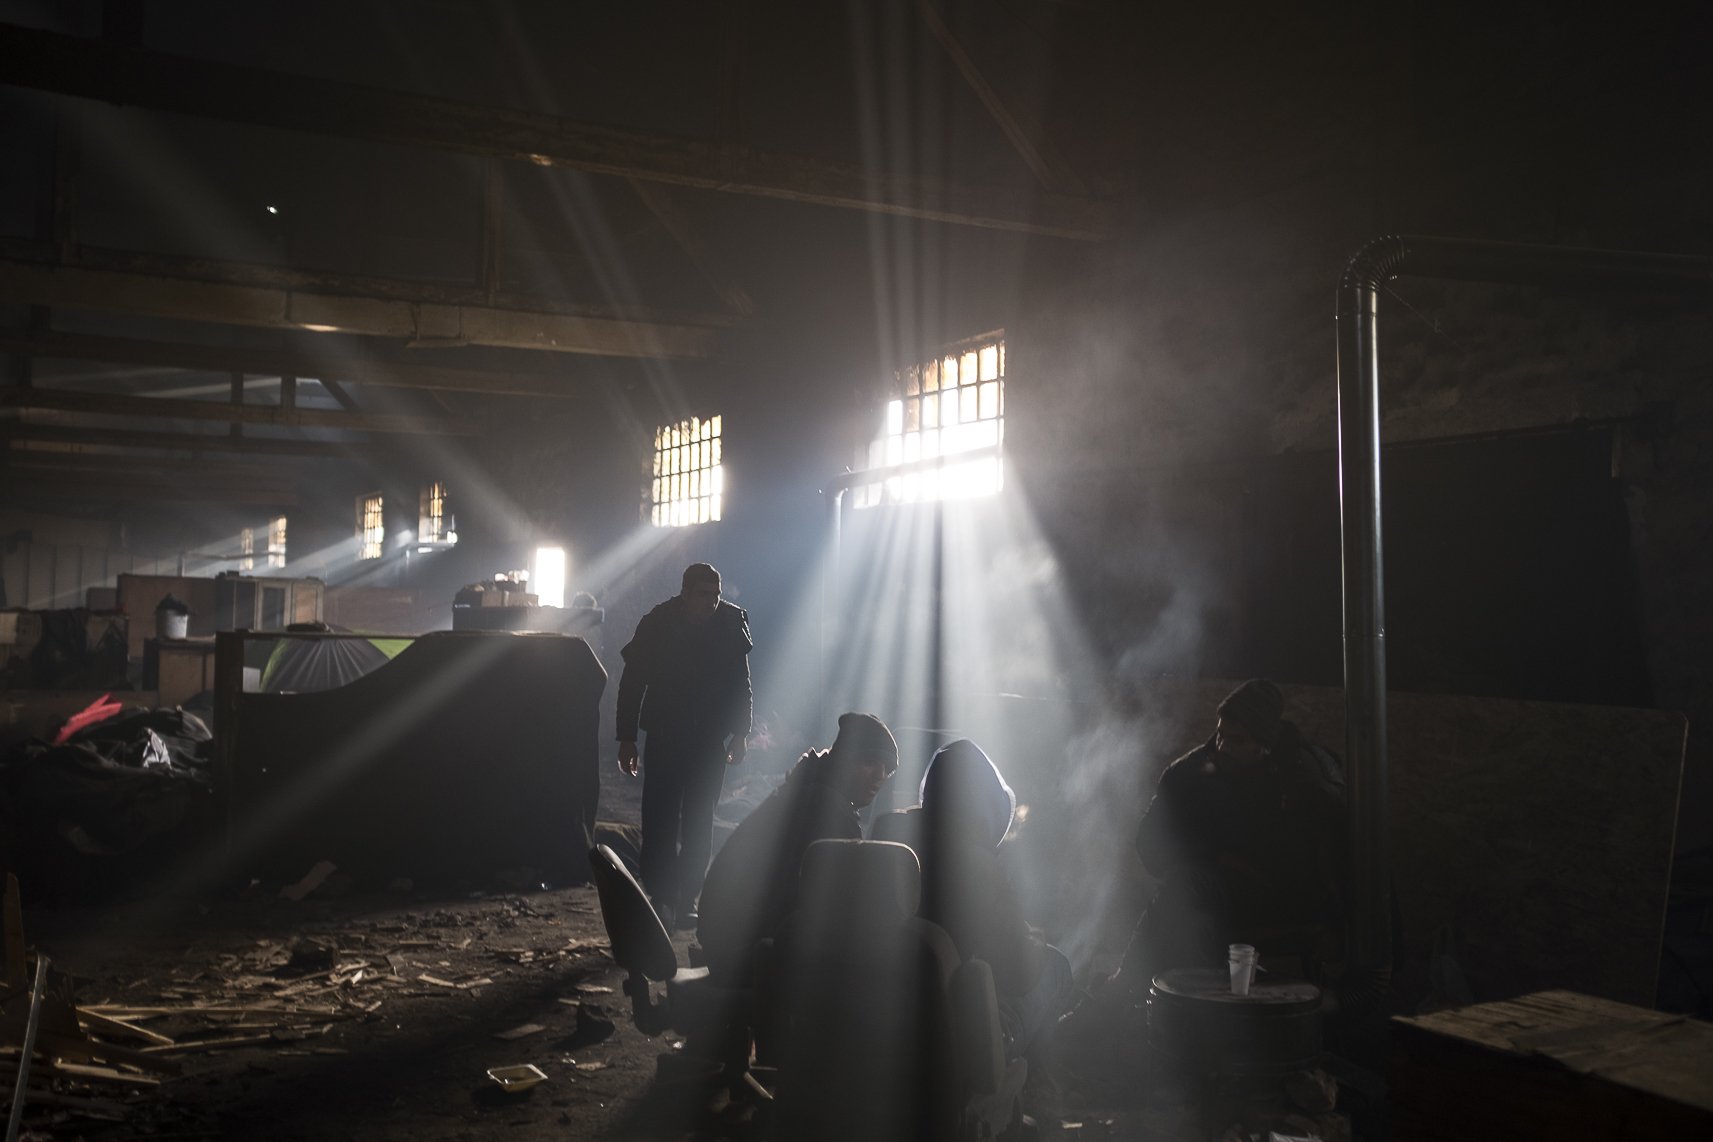 Migrants chat while warming themselves around a fire inside an abandoned warehouse where they took shelter in Belgrade, Serbia. February 14, 2107.